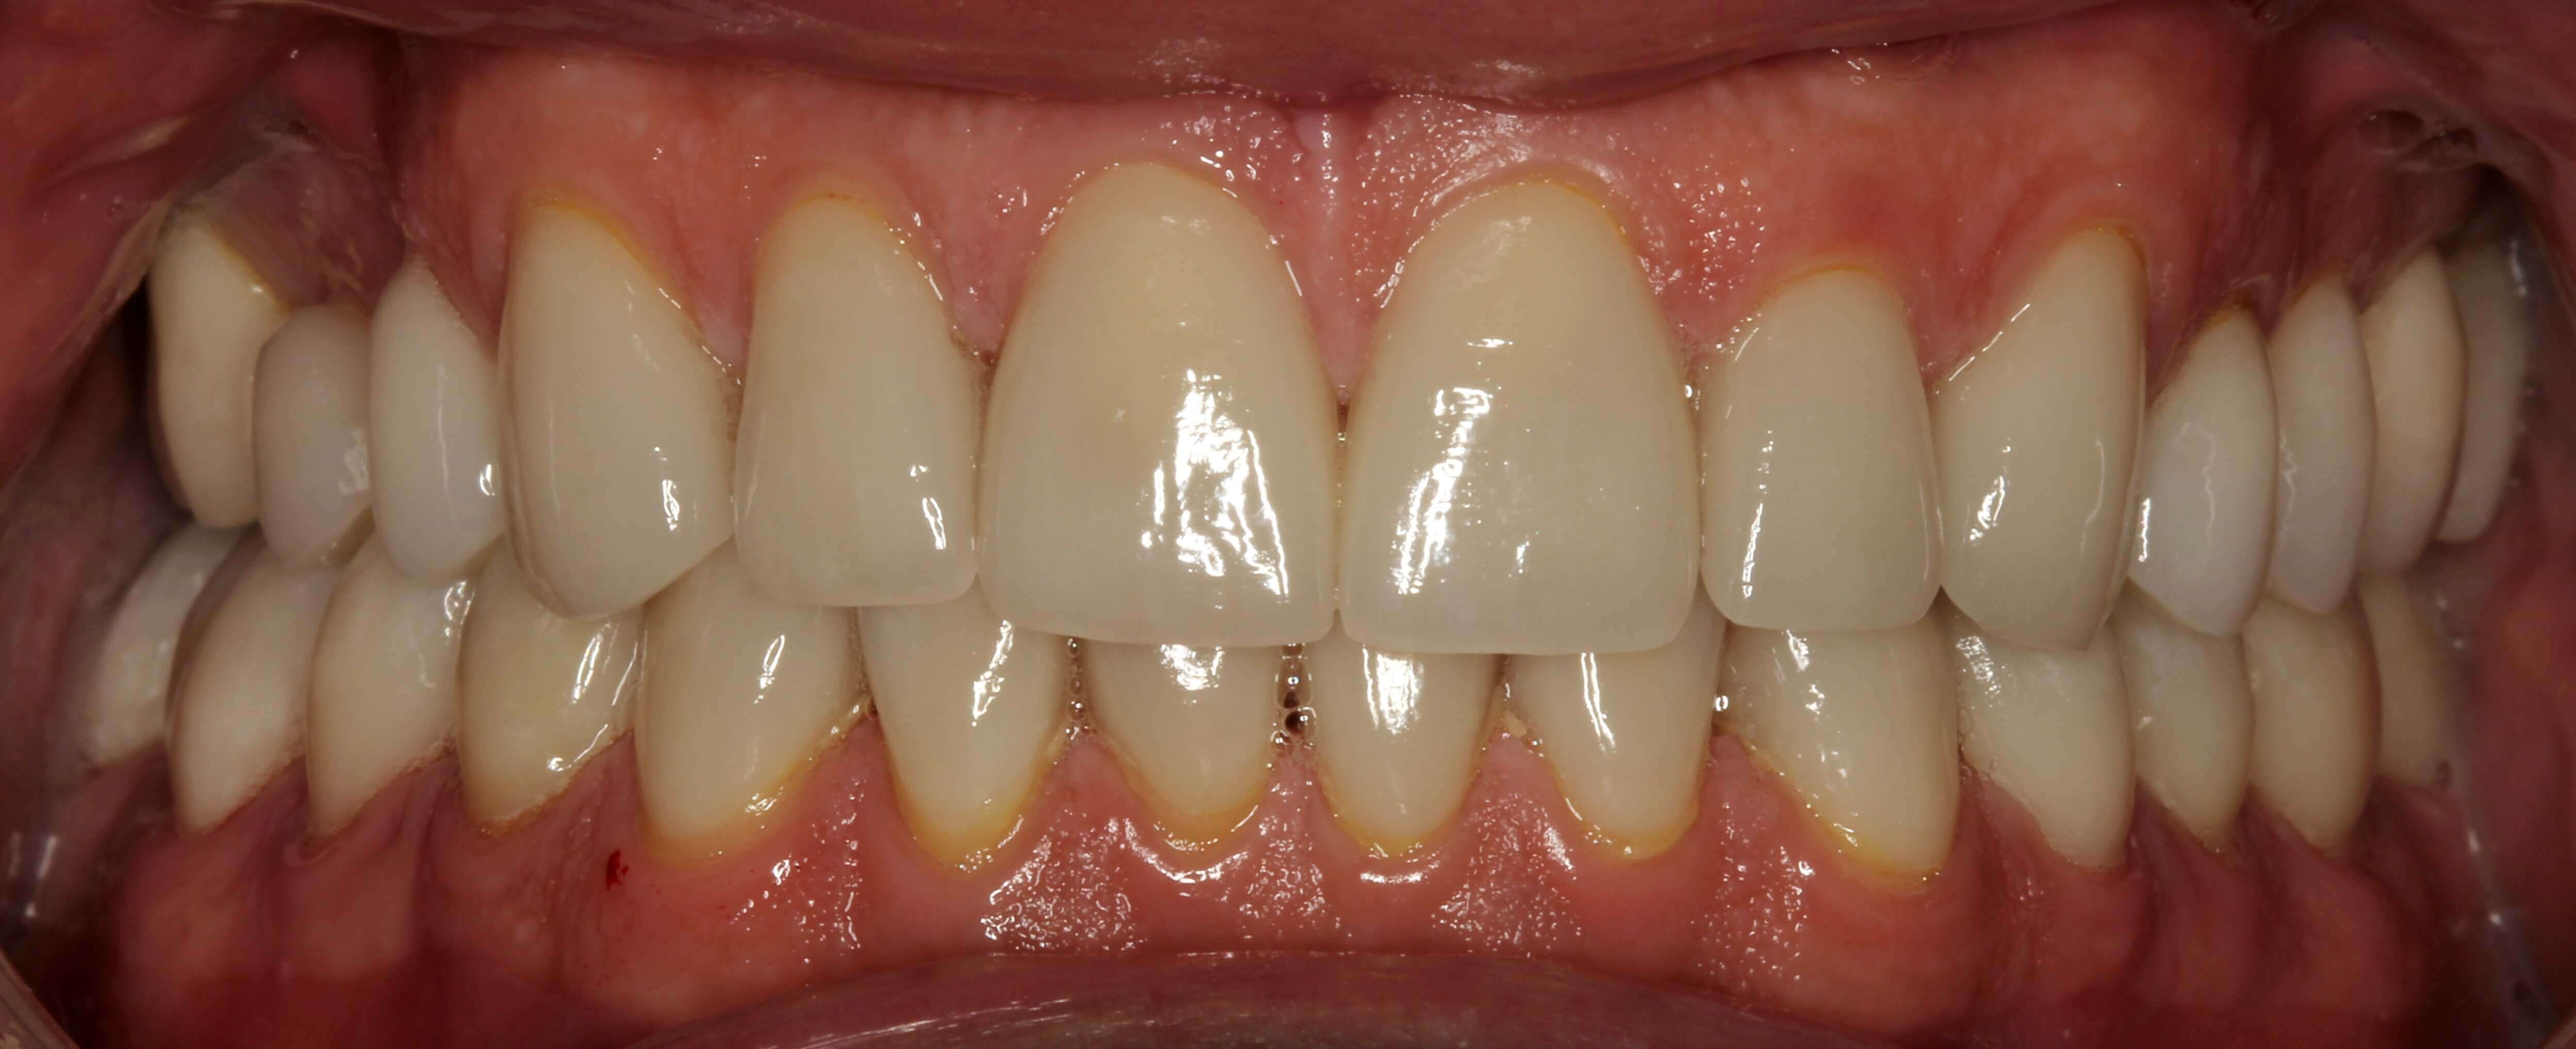 Porcelain Crowns & Veneers NYC After